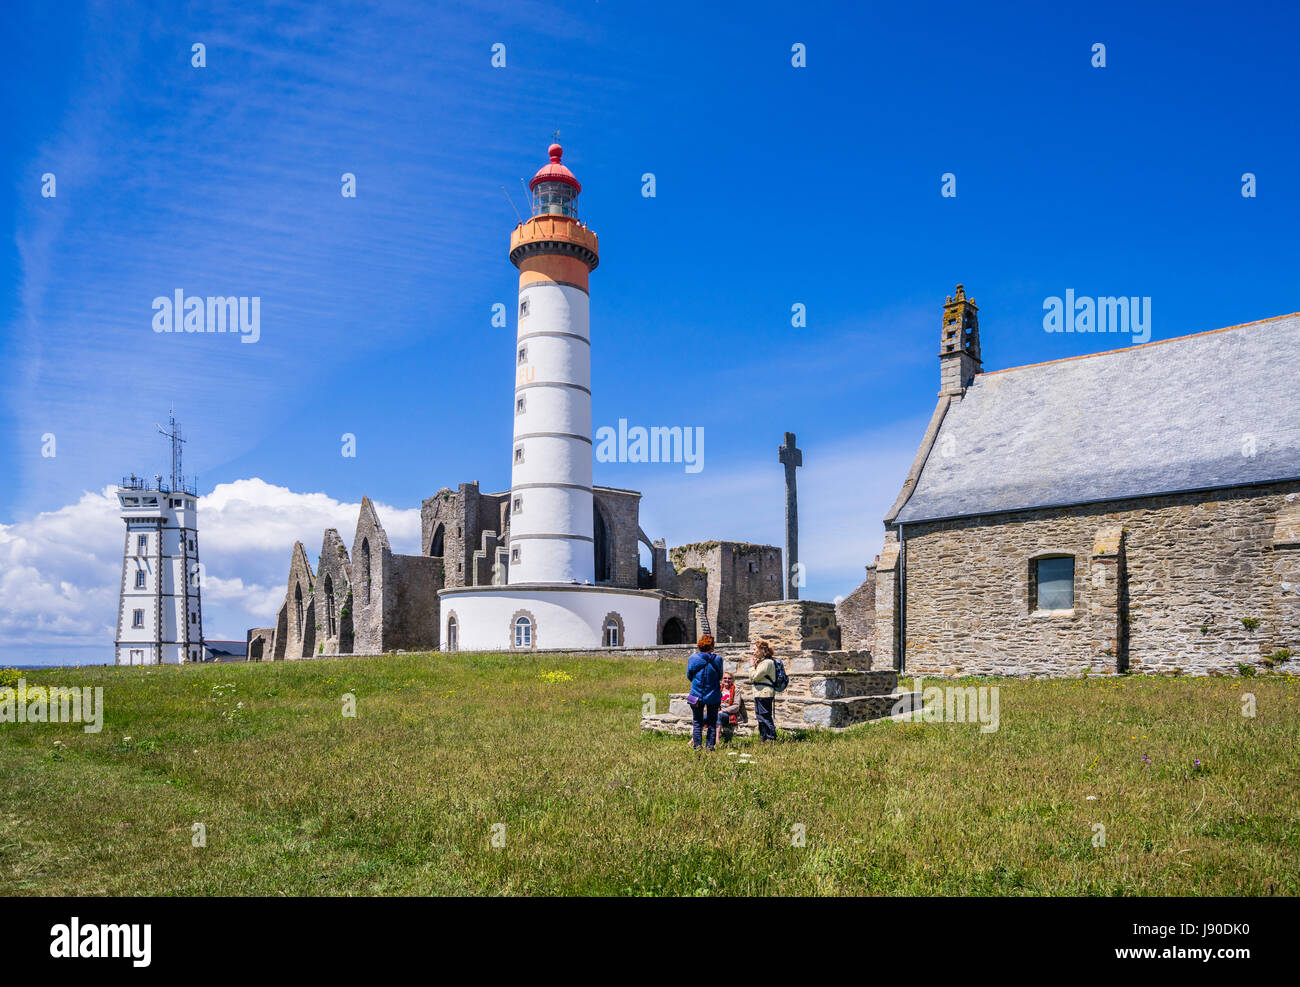 France, Brittany, Finistére department, Pointe Sant-Mathieu, view of the sémaphore signal station, the ruins of Stock Photo